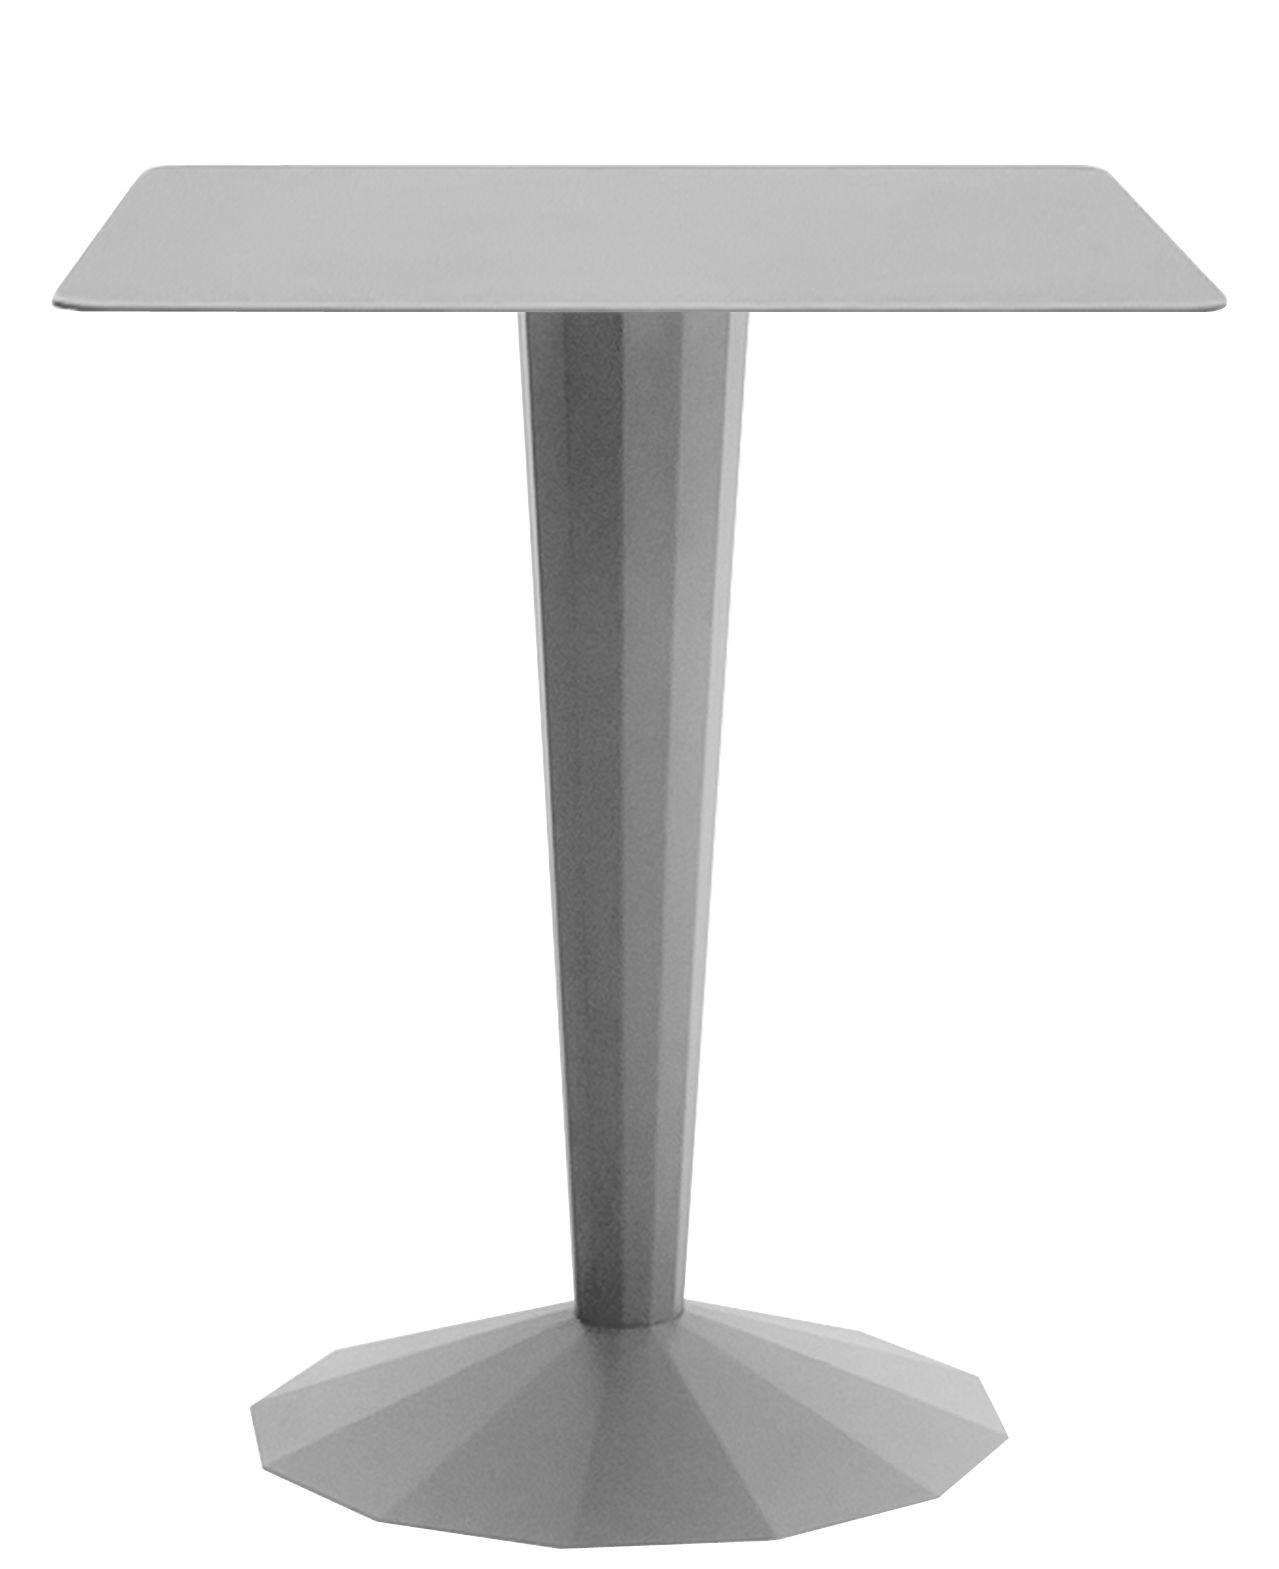 Furniture - Dining Tables - Ankara S Square table by Matière Grise - Alu grey - Steel